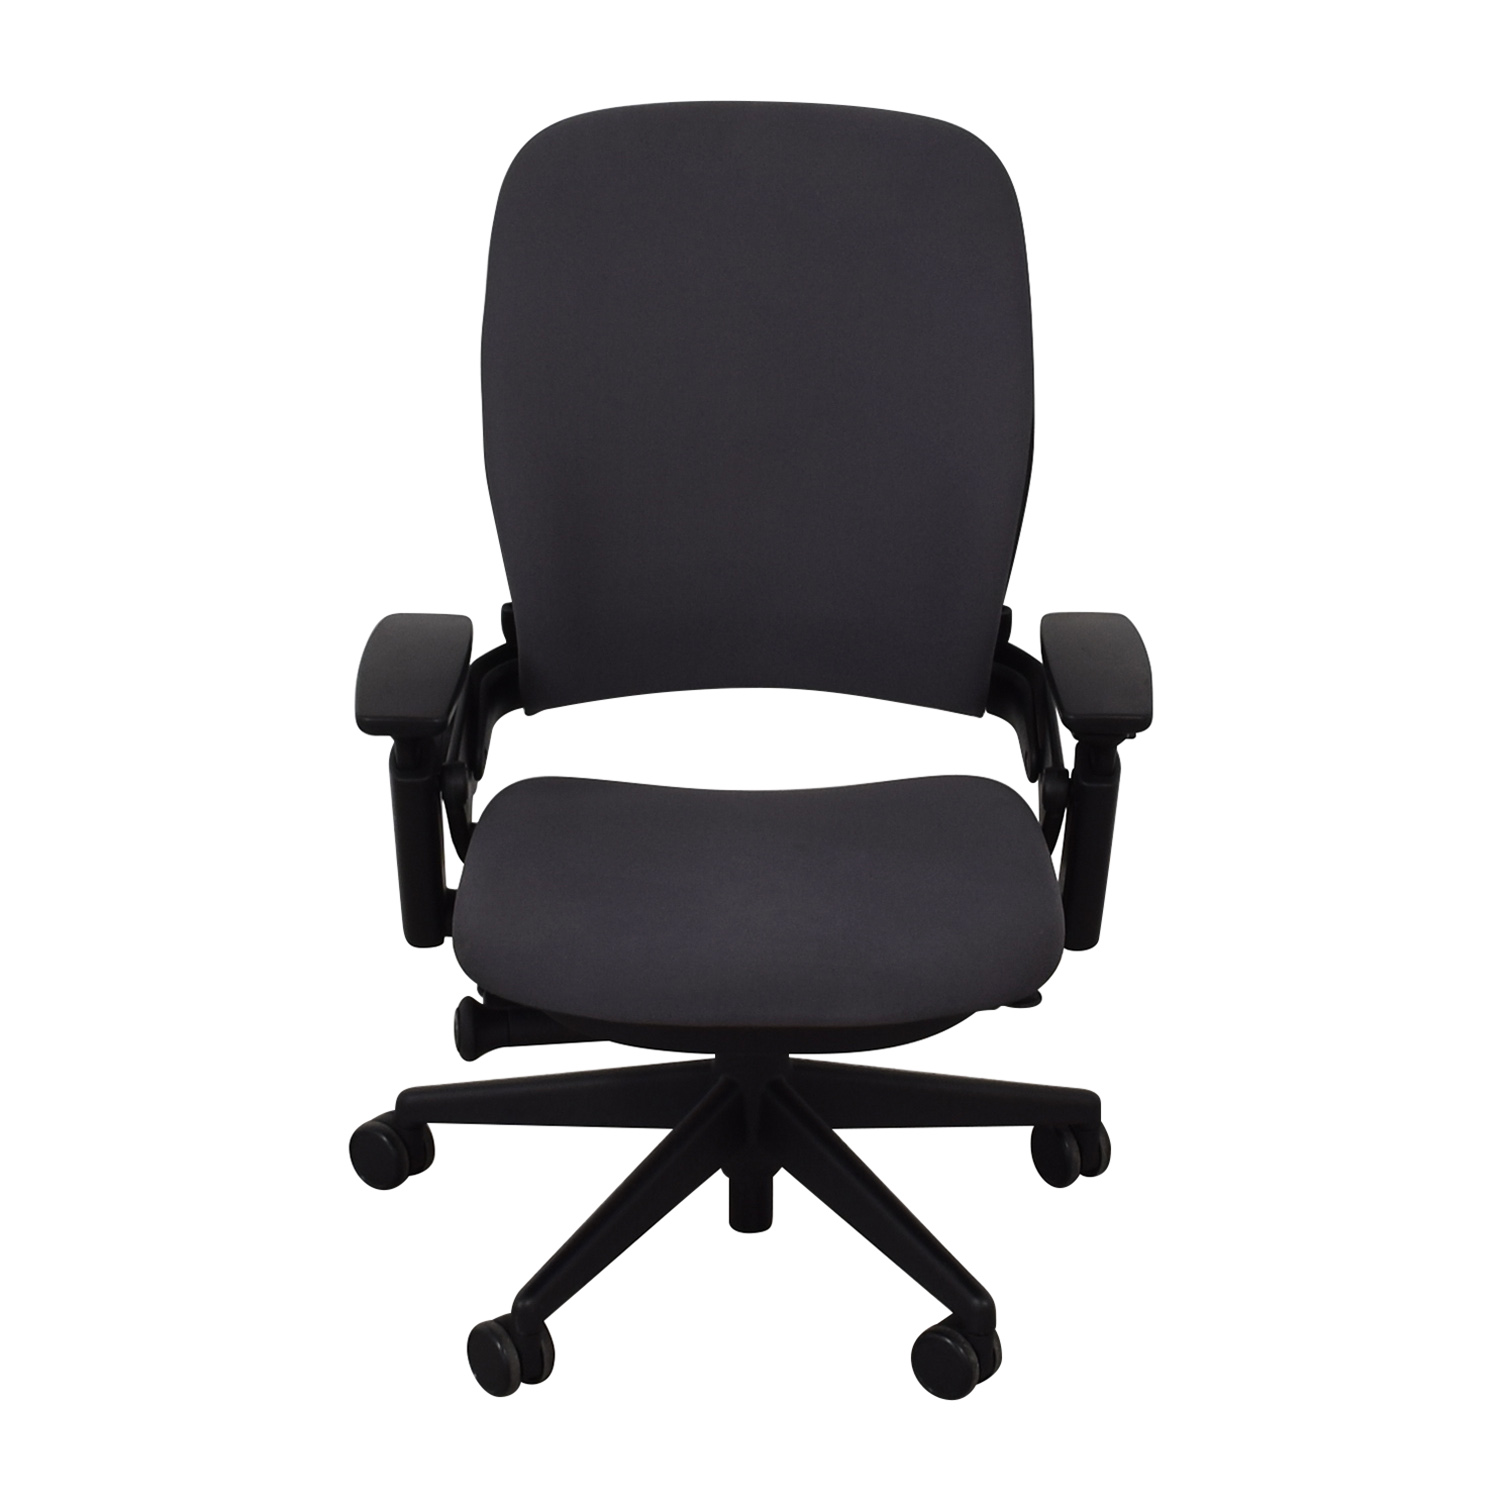 Steelcase Steelcase Leap Chair used